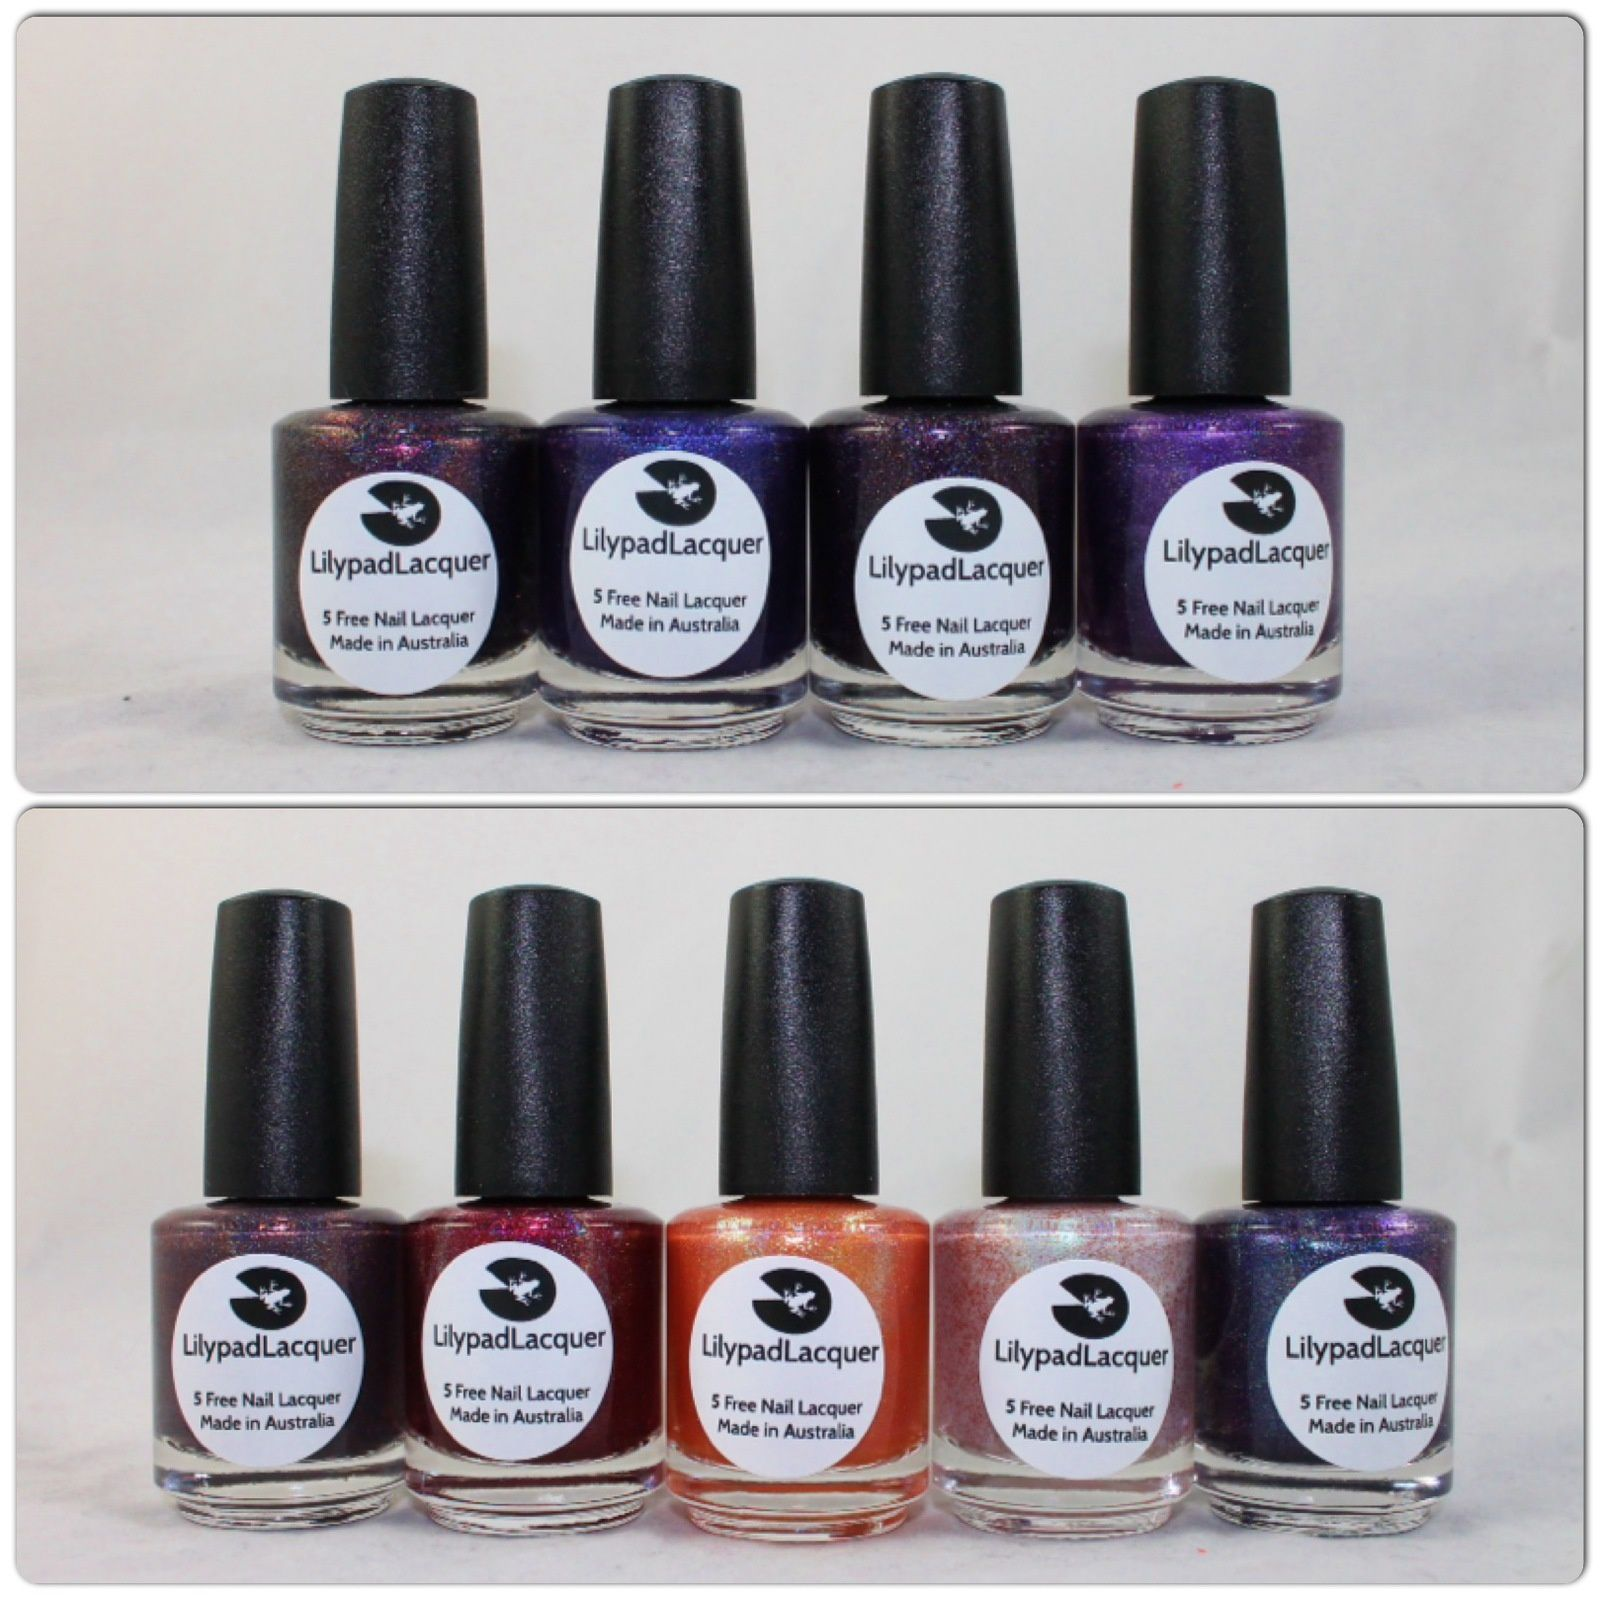 Lilypad Lacquer Mercredi, Cousin Machin, Pugsley & Good Girl Gone Bad. Lilypad Lacquer Beltelgeuse, The Wedding, The Pumkin King, Sally's Song & Edwardo The Barber.